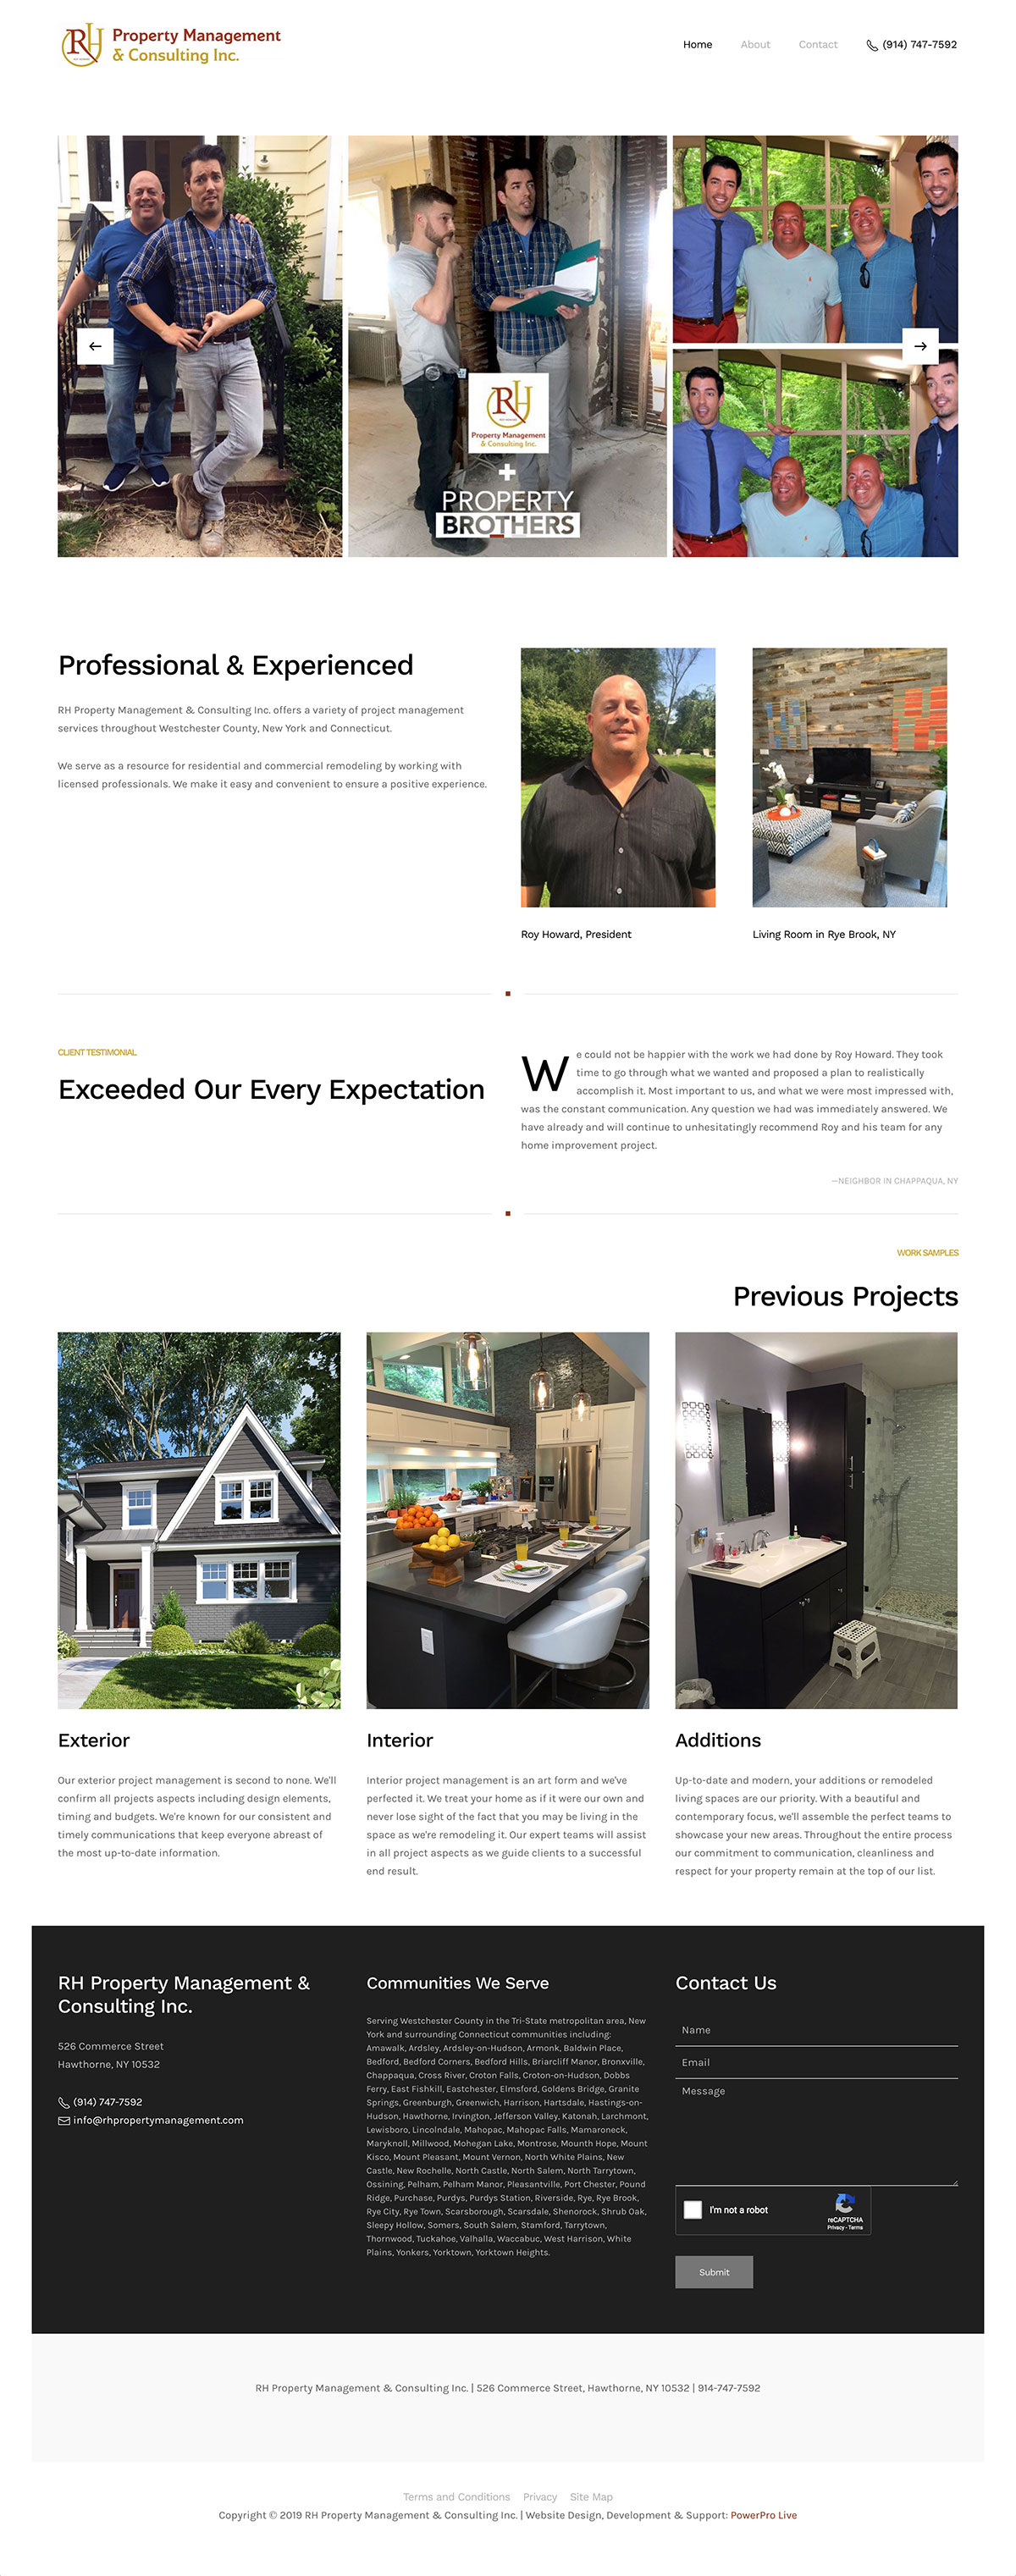 rh-property-management-website